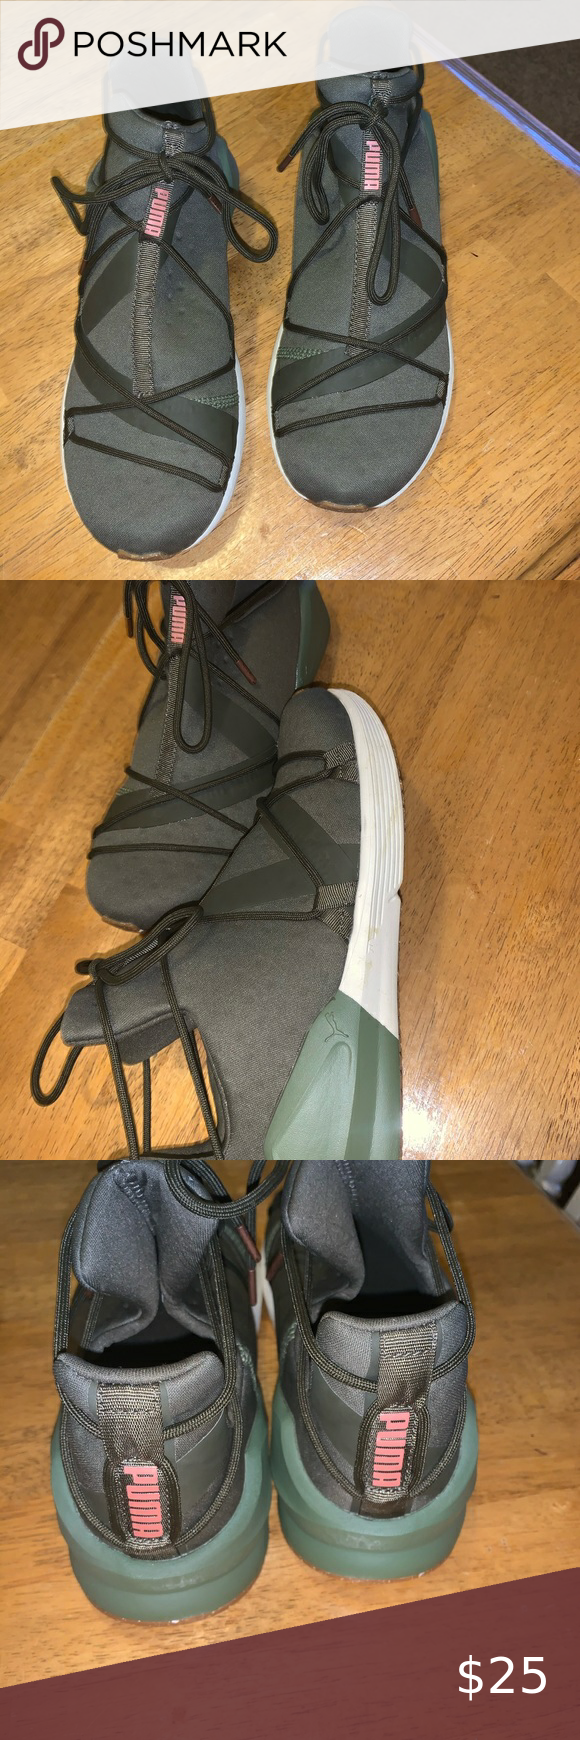 Olive green Puma sneakers with rose